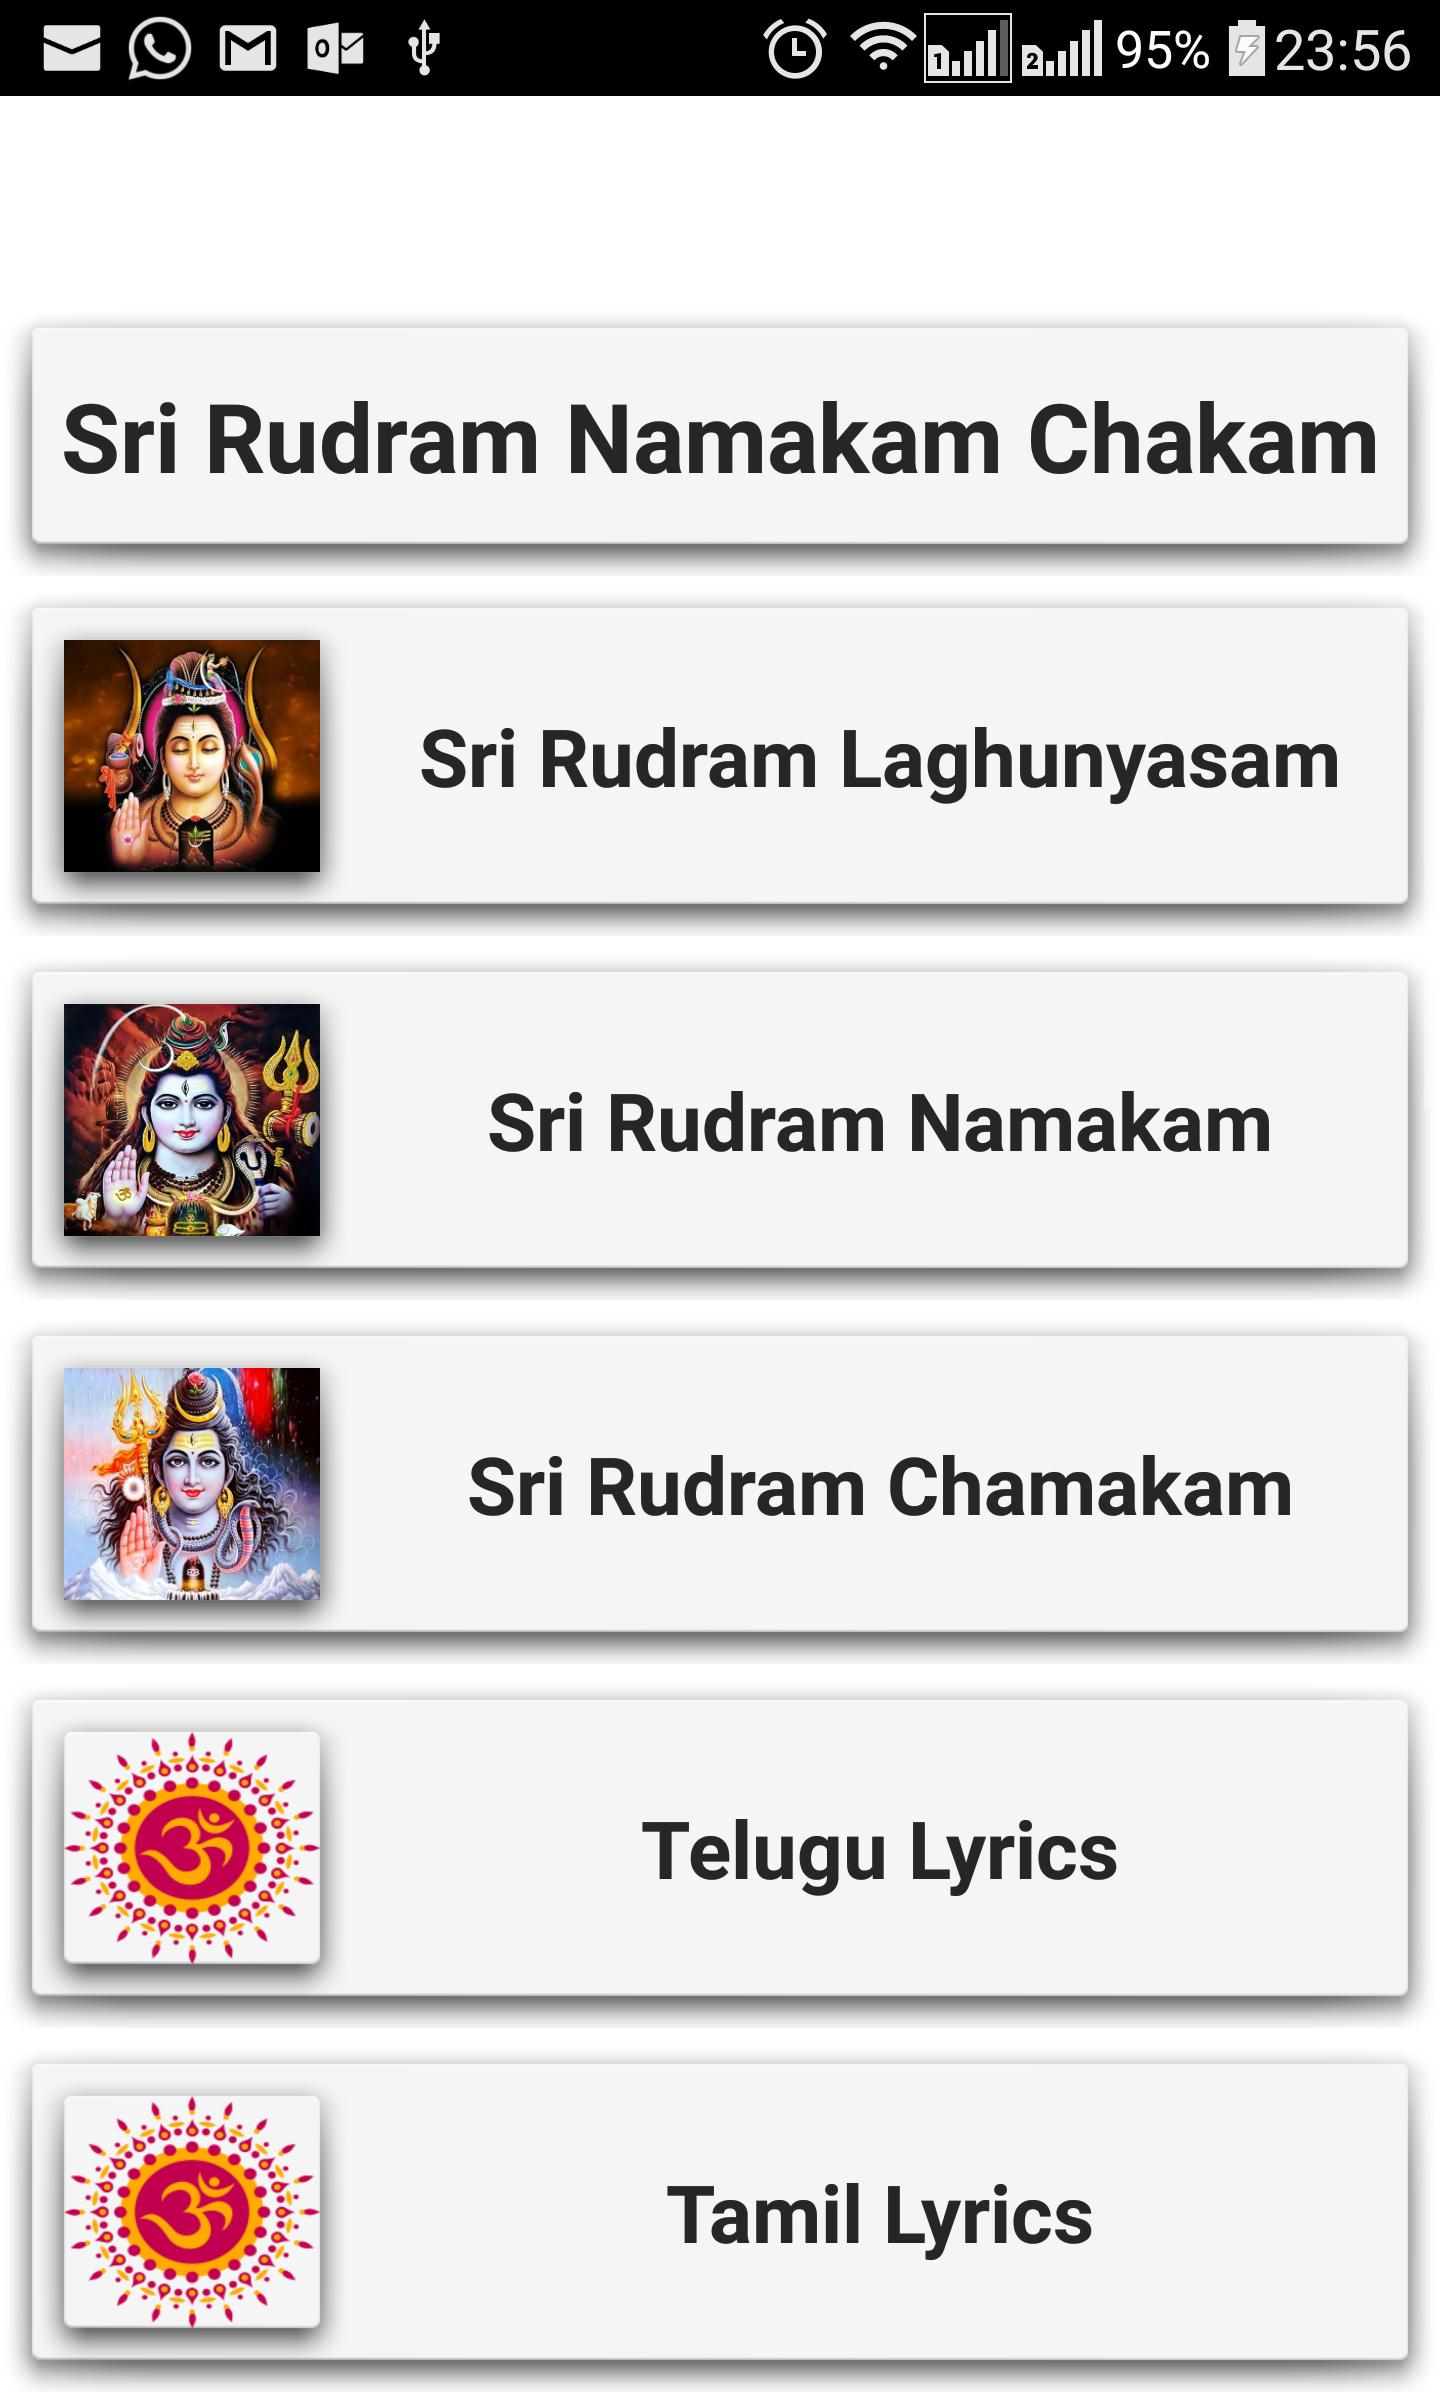 Chamakam lyrics